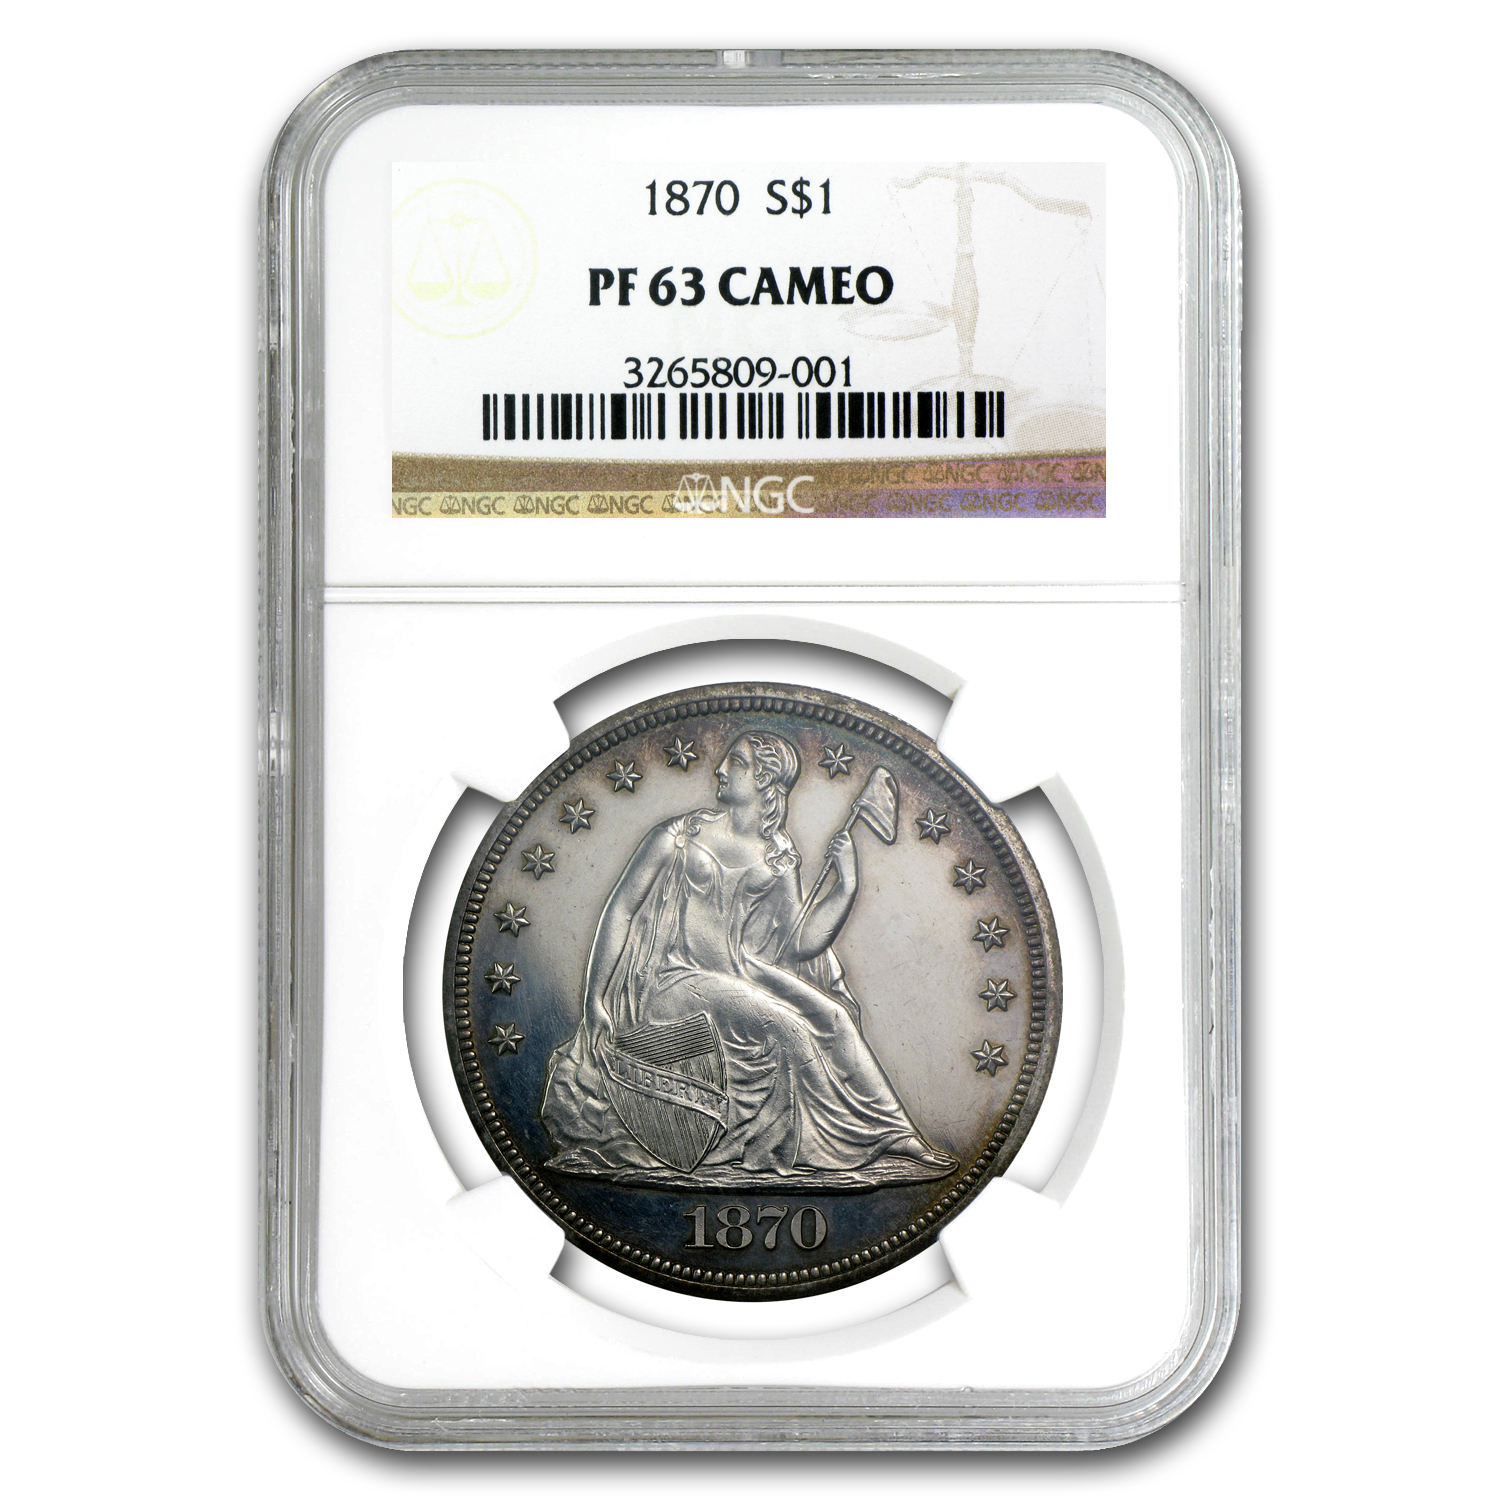 1870 Liberty Seated Dollar Proof-63 Cameo NGC